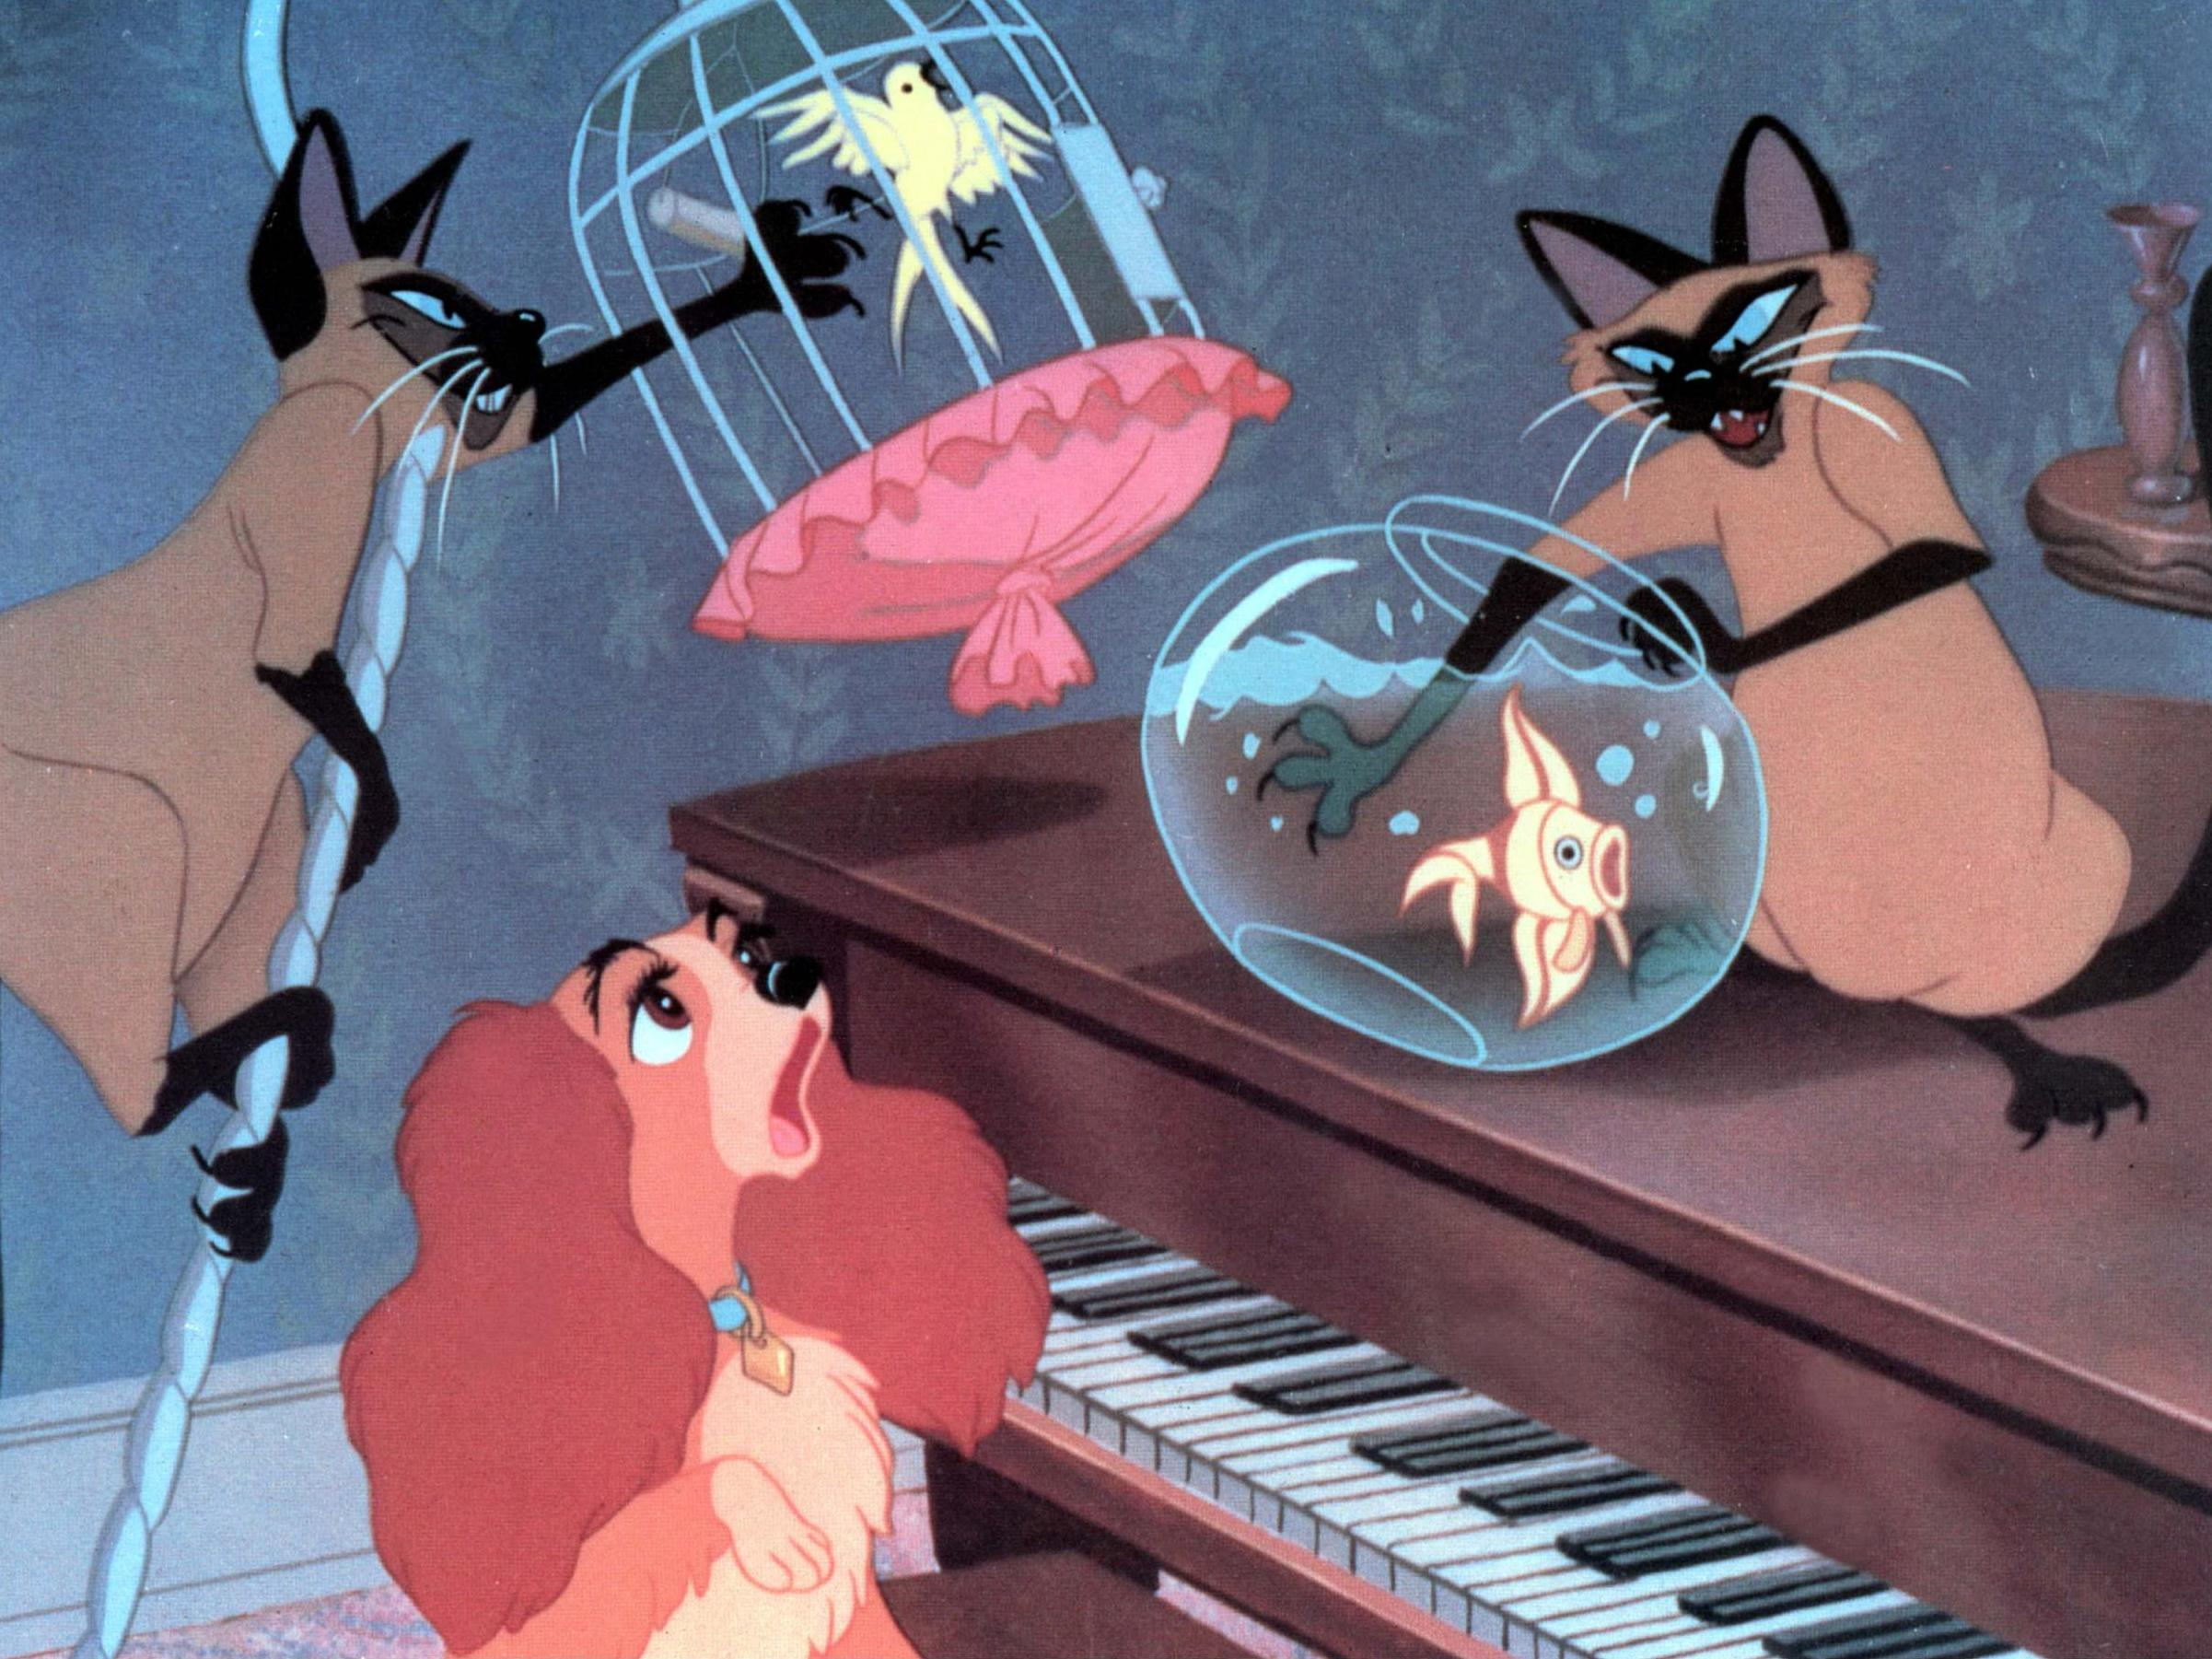 Lady And The Tramp Siamese Cat Characters To Be Scrapped From Disney Remake The Independent The Independent